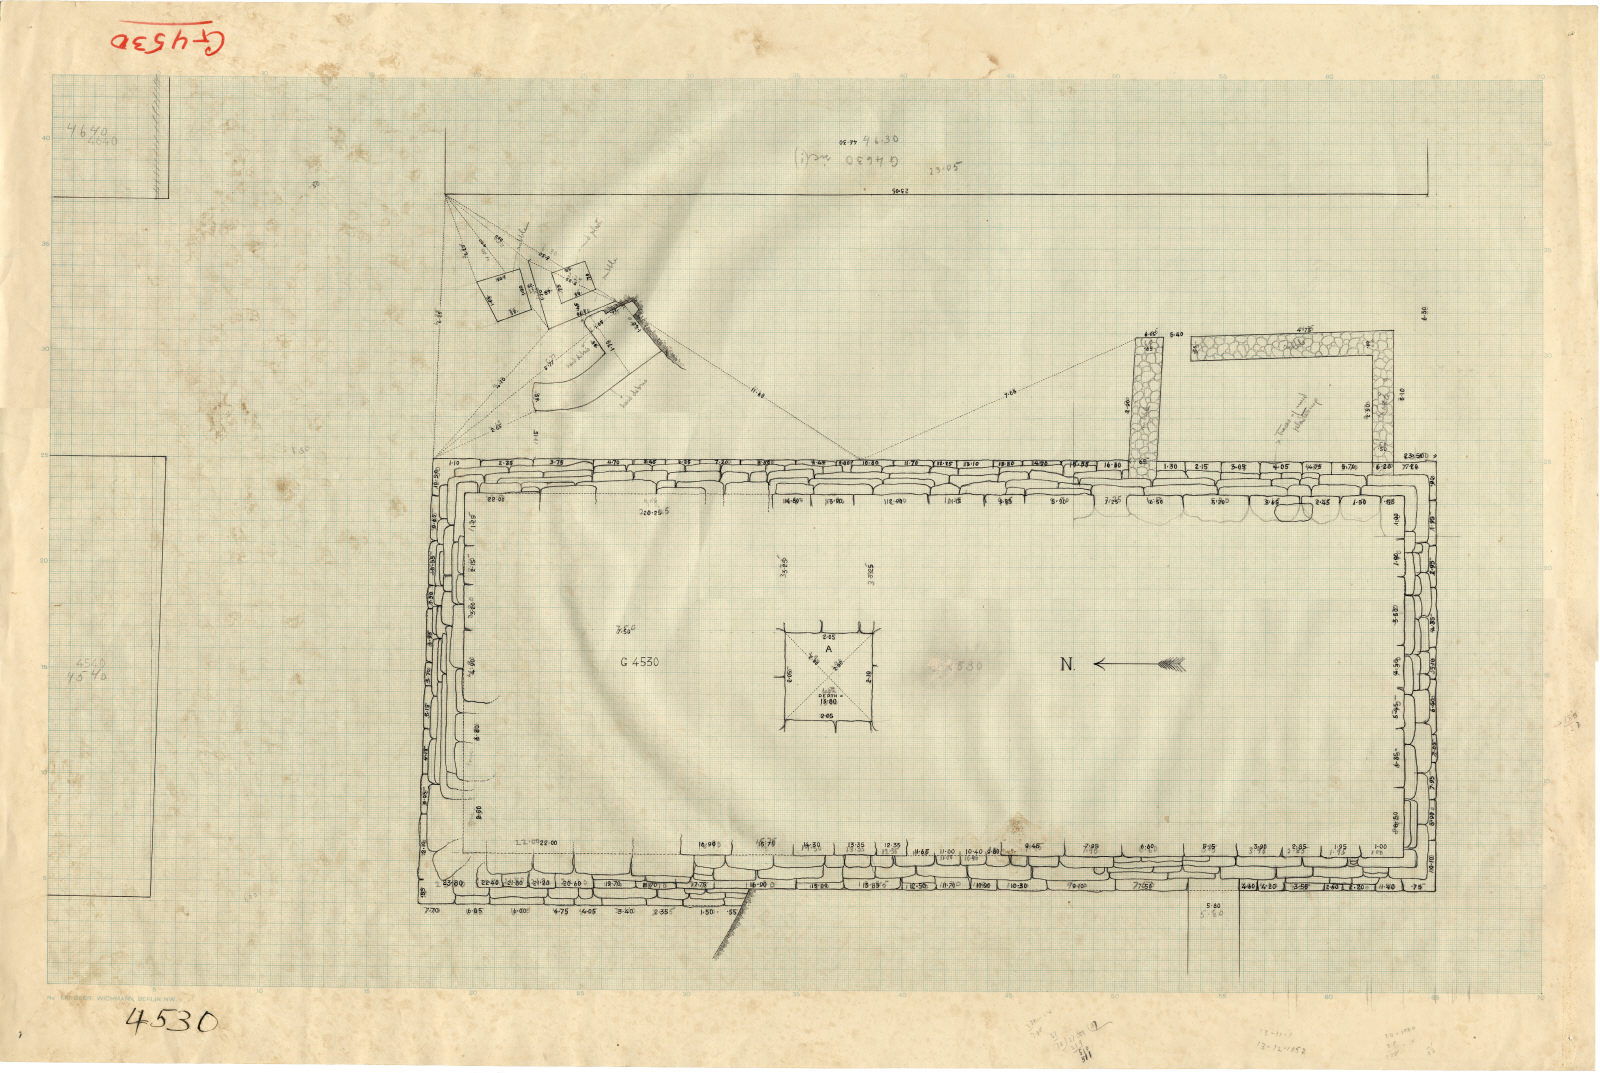 Maps and plans: Plan of G 4530, with positions of G 4540, G 4630, G 4640